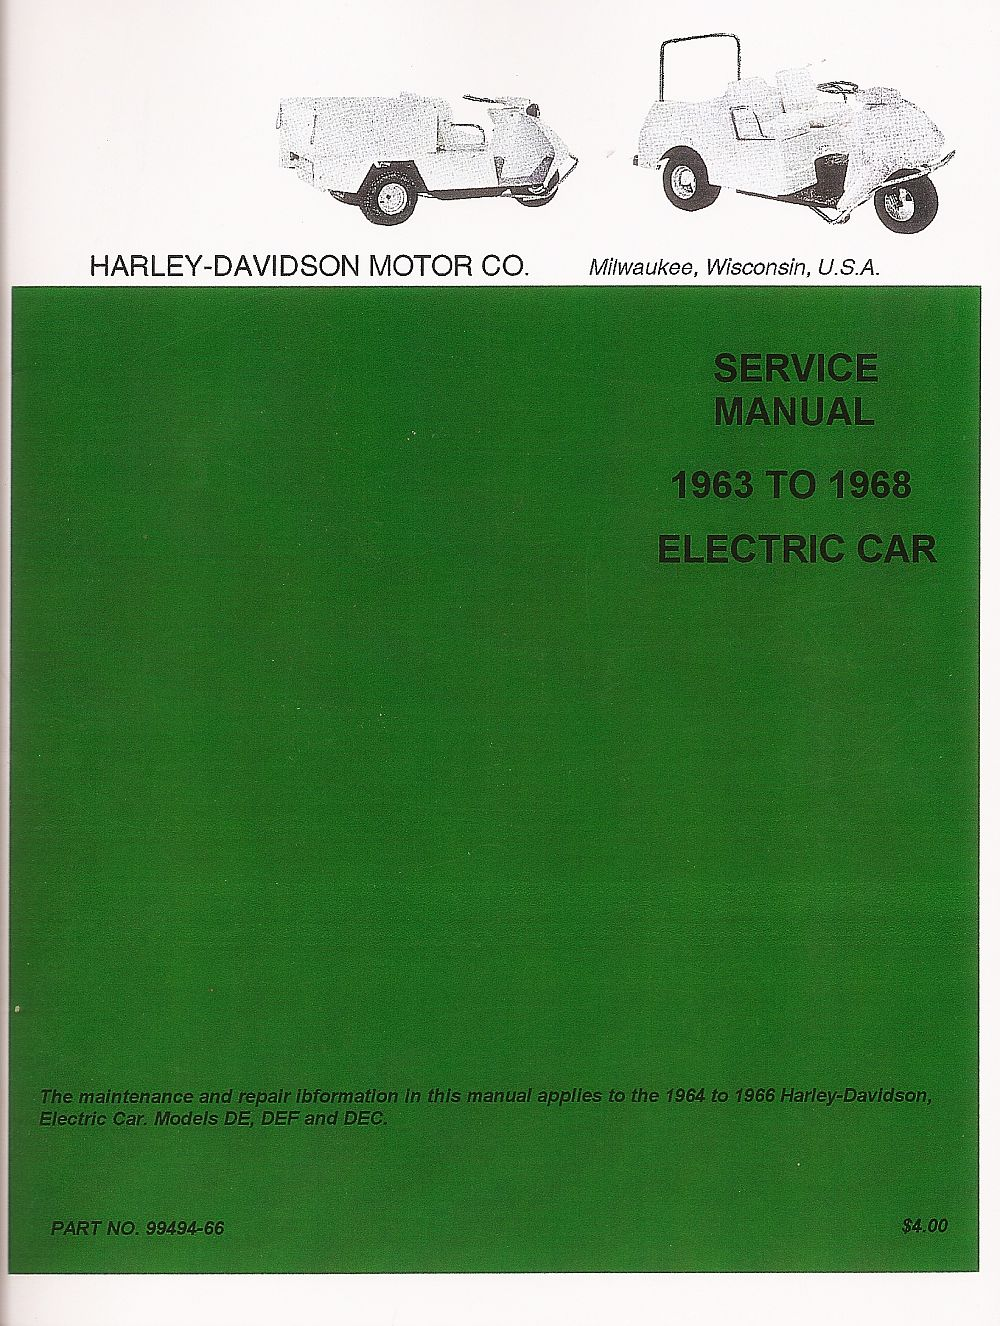 PU11-002 - Electric Service Manual, '63-'68